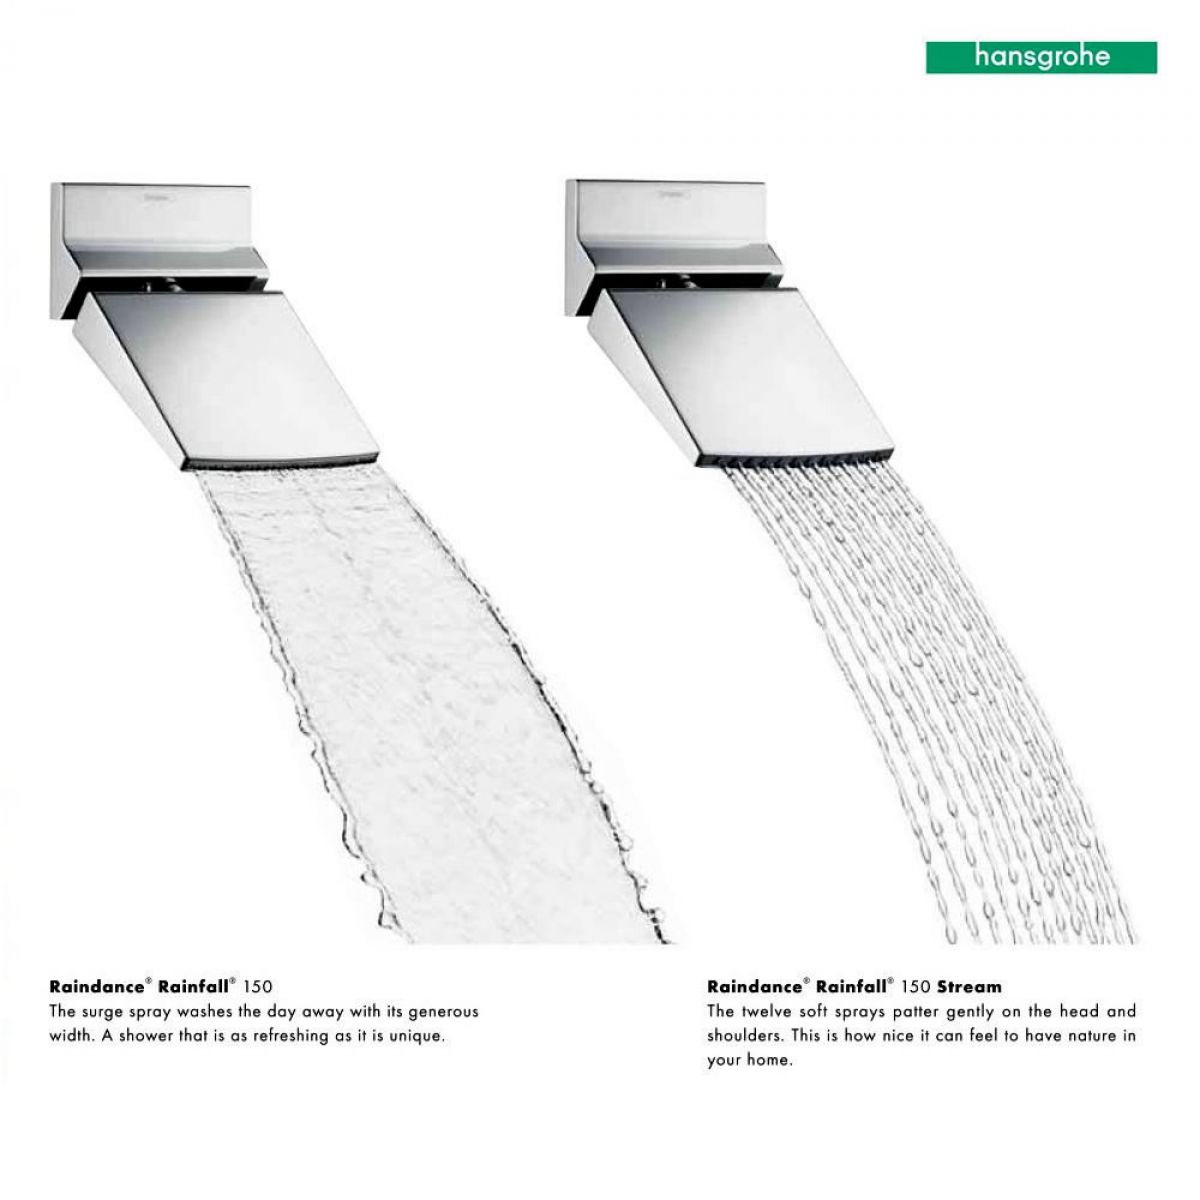 hansgrohe raindance rainfall 150 shower head uk bathrooms. Black Bedroom Furniture Sets. Home Design Ideas